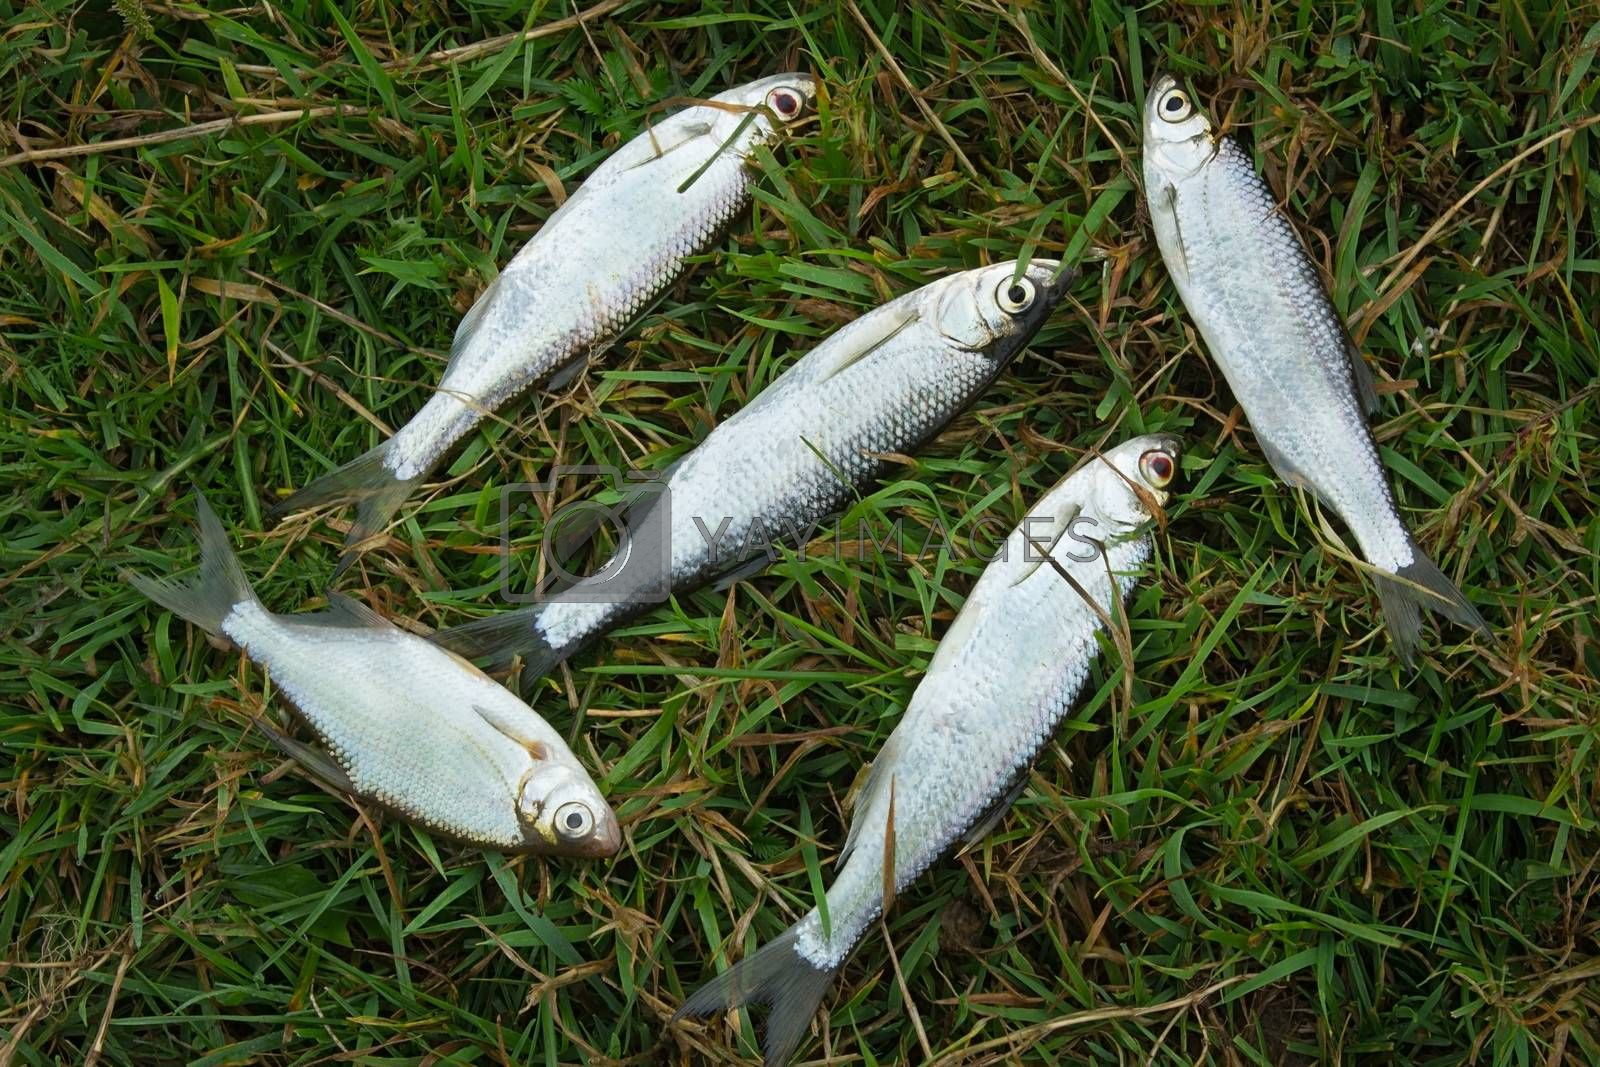 A few small fish caught in the river, lying on the Bank on the green grass.